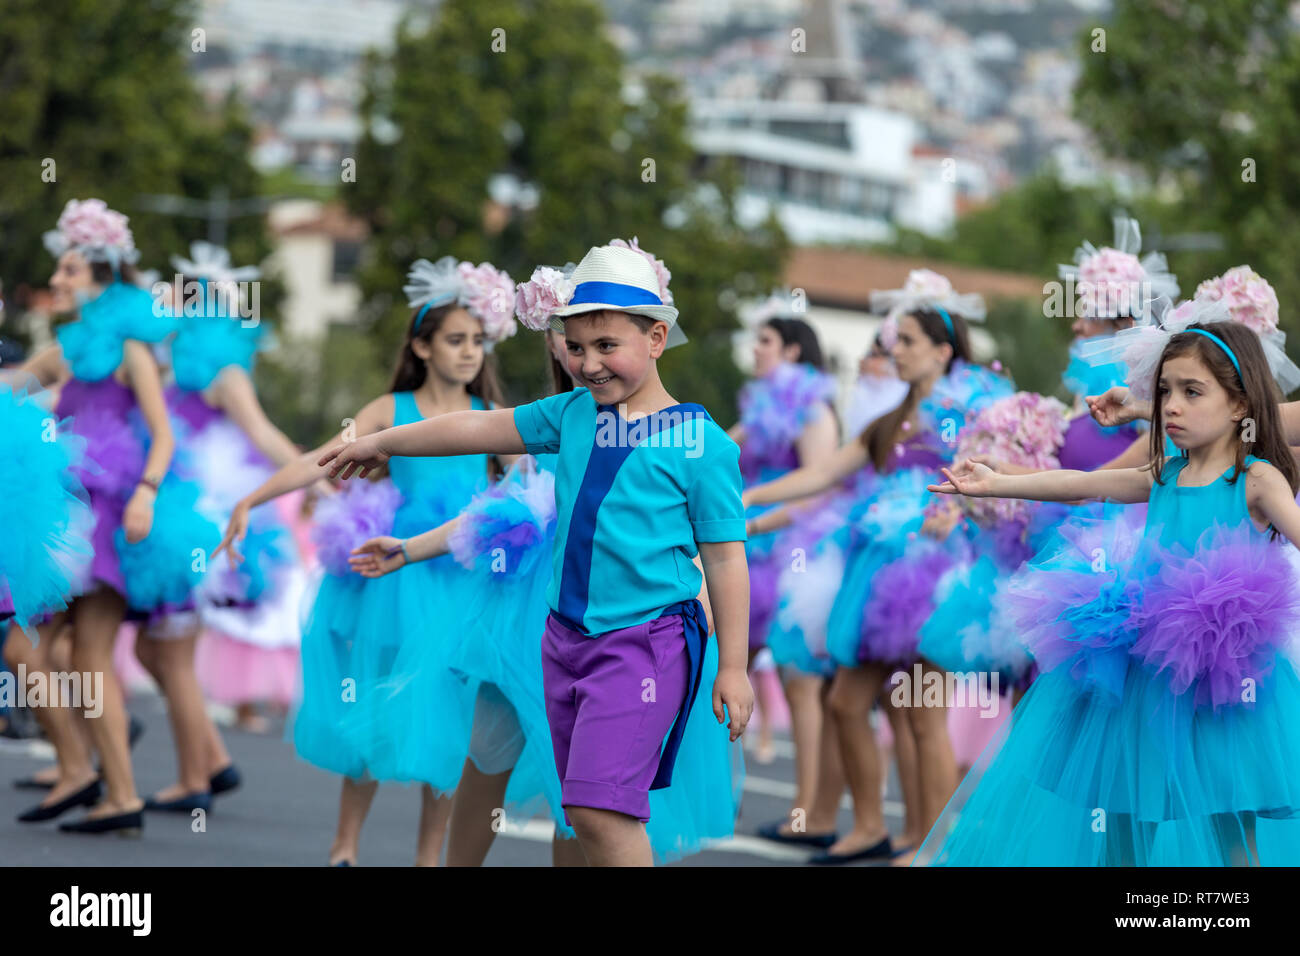 Funchal; Madeira; Portugal - April 22; 2018: A group of children in colorful costumes are dancing at Madeira Flower Festival Parade in Funchal on the  - Stock Image